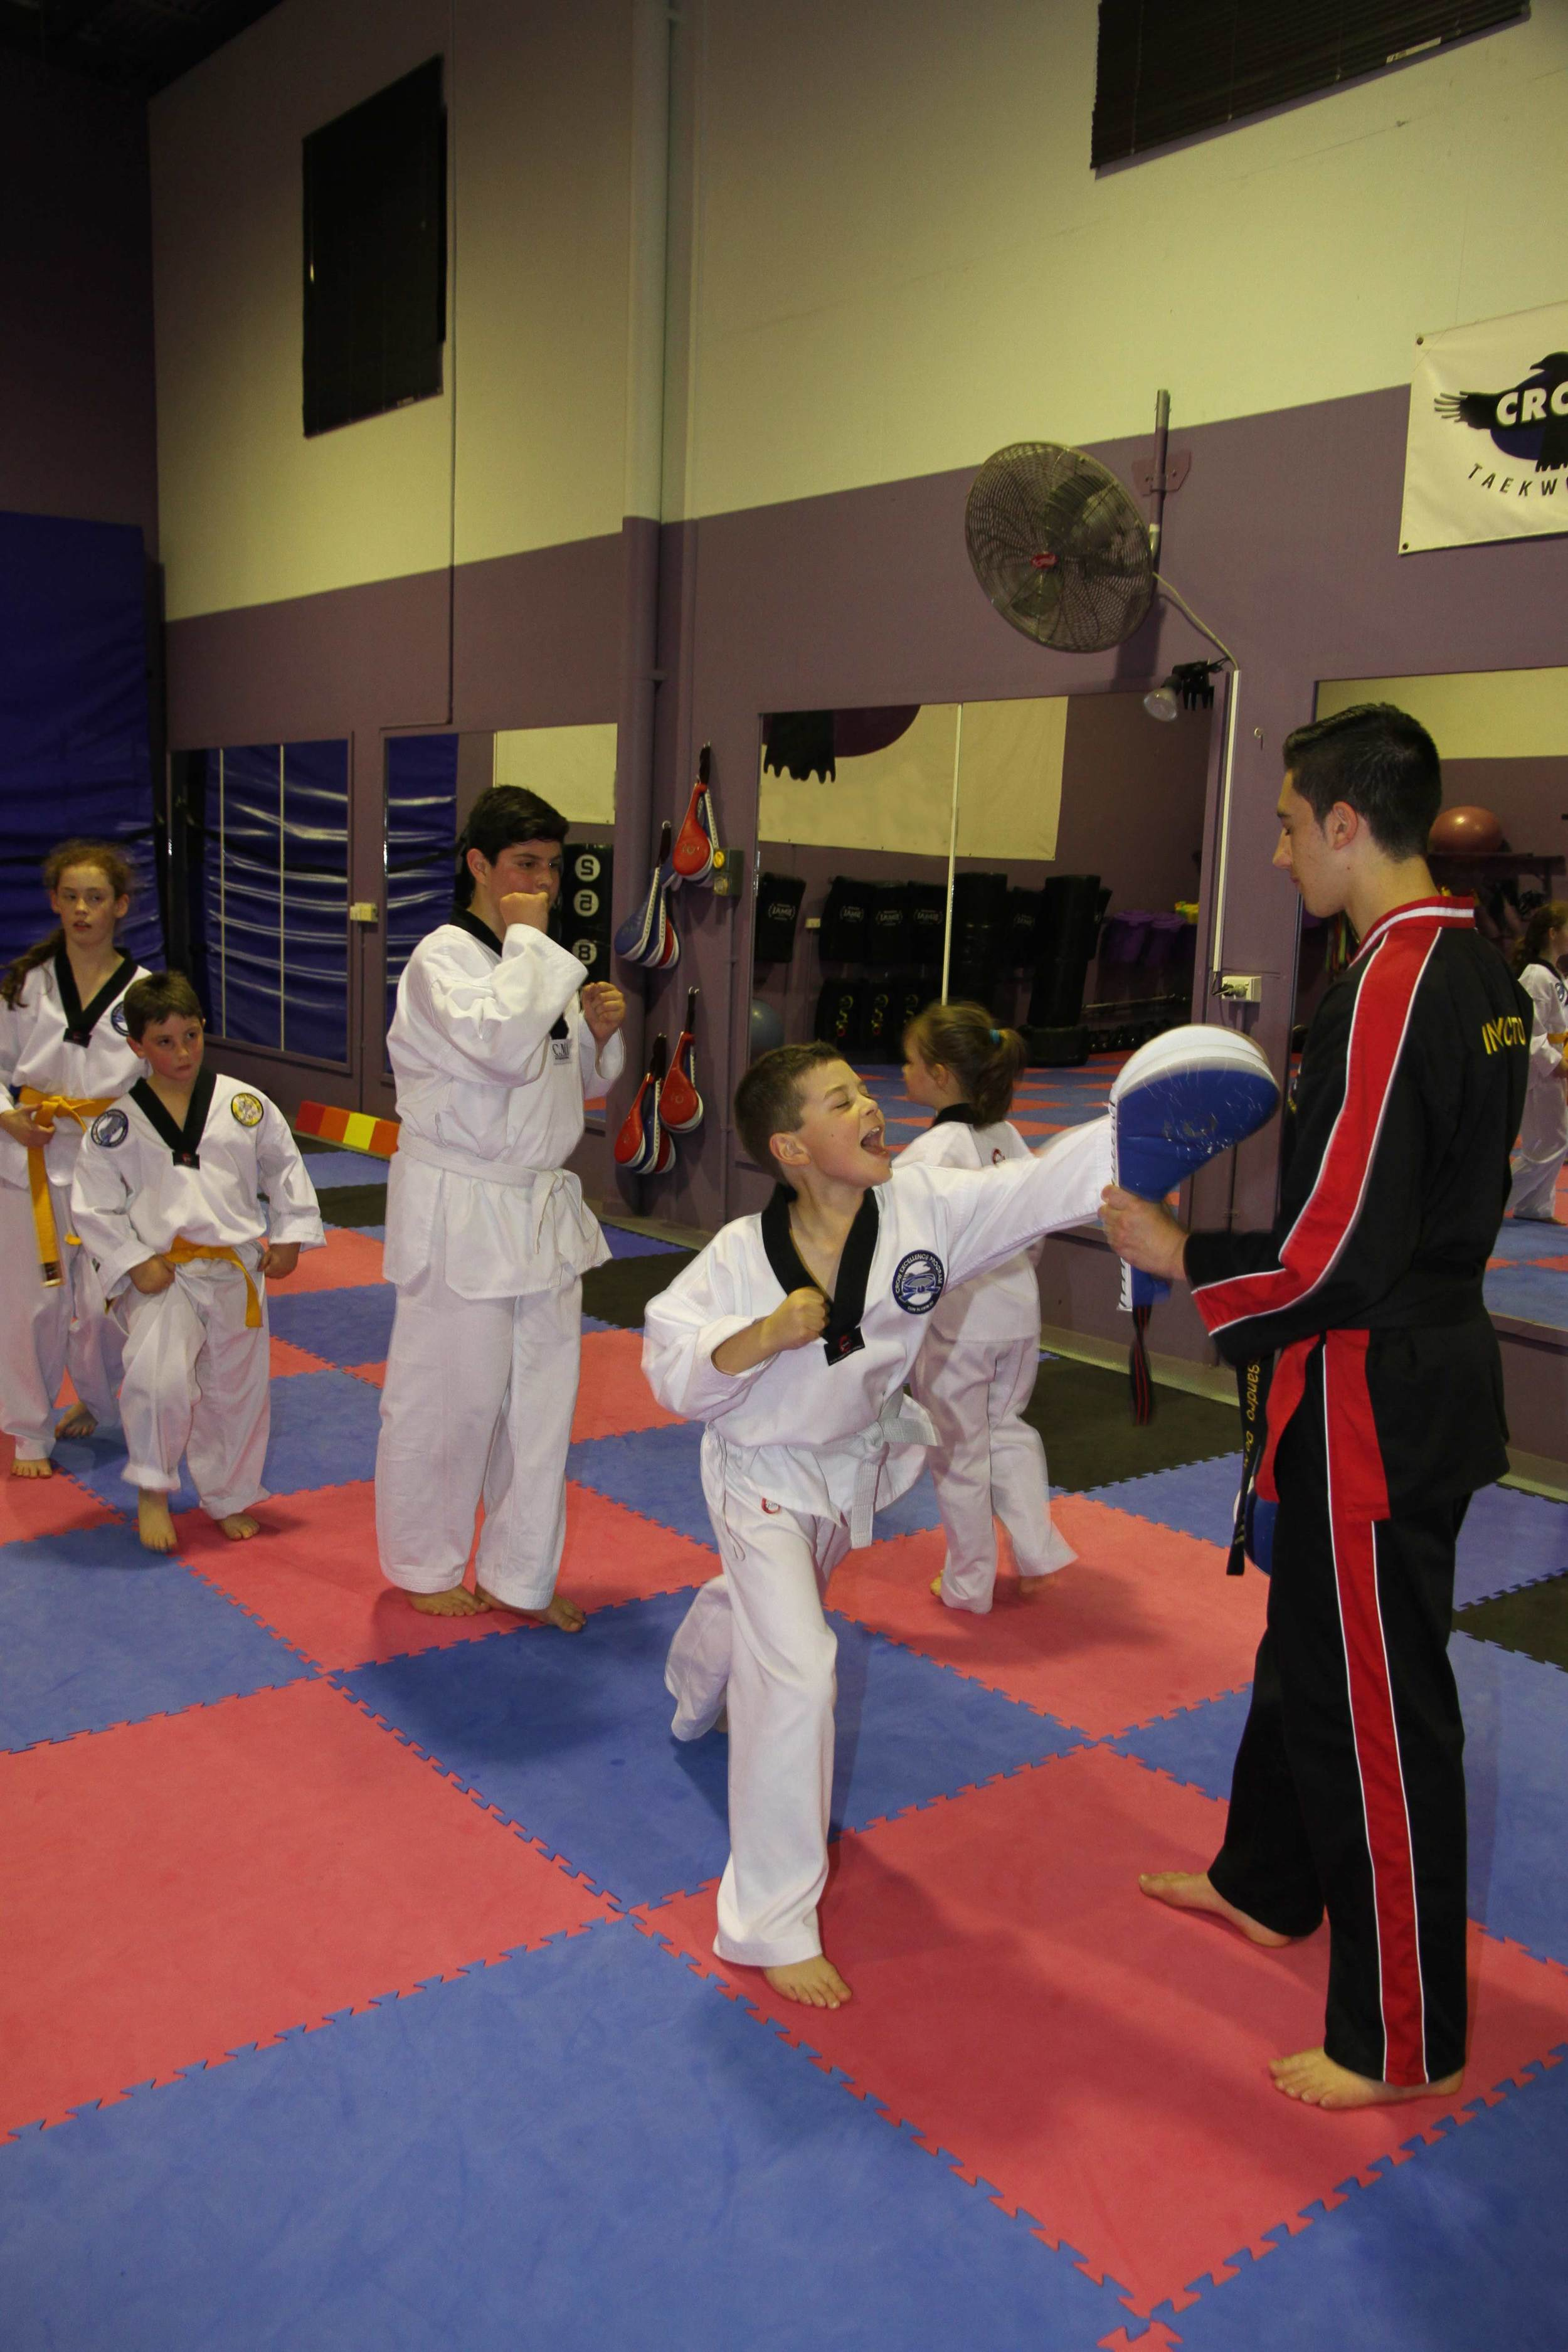 The program caters for beginners and intermediate students